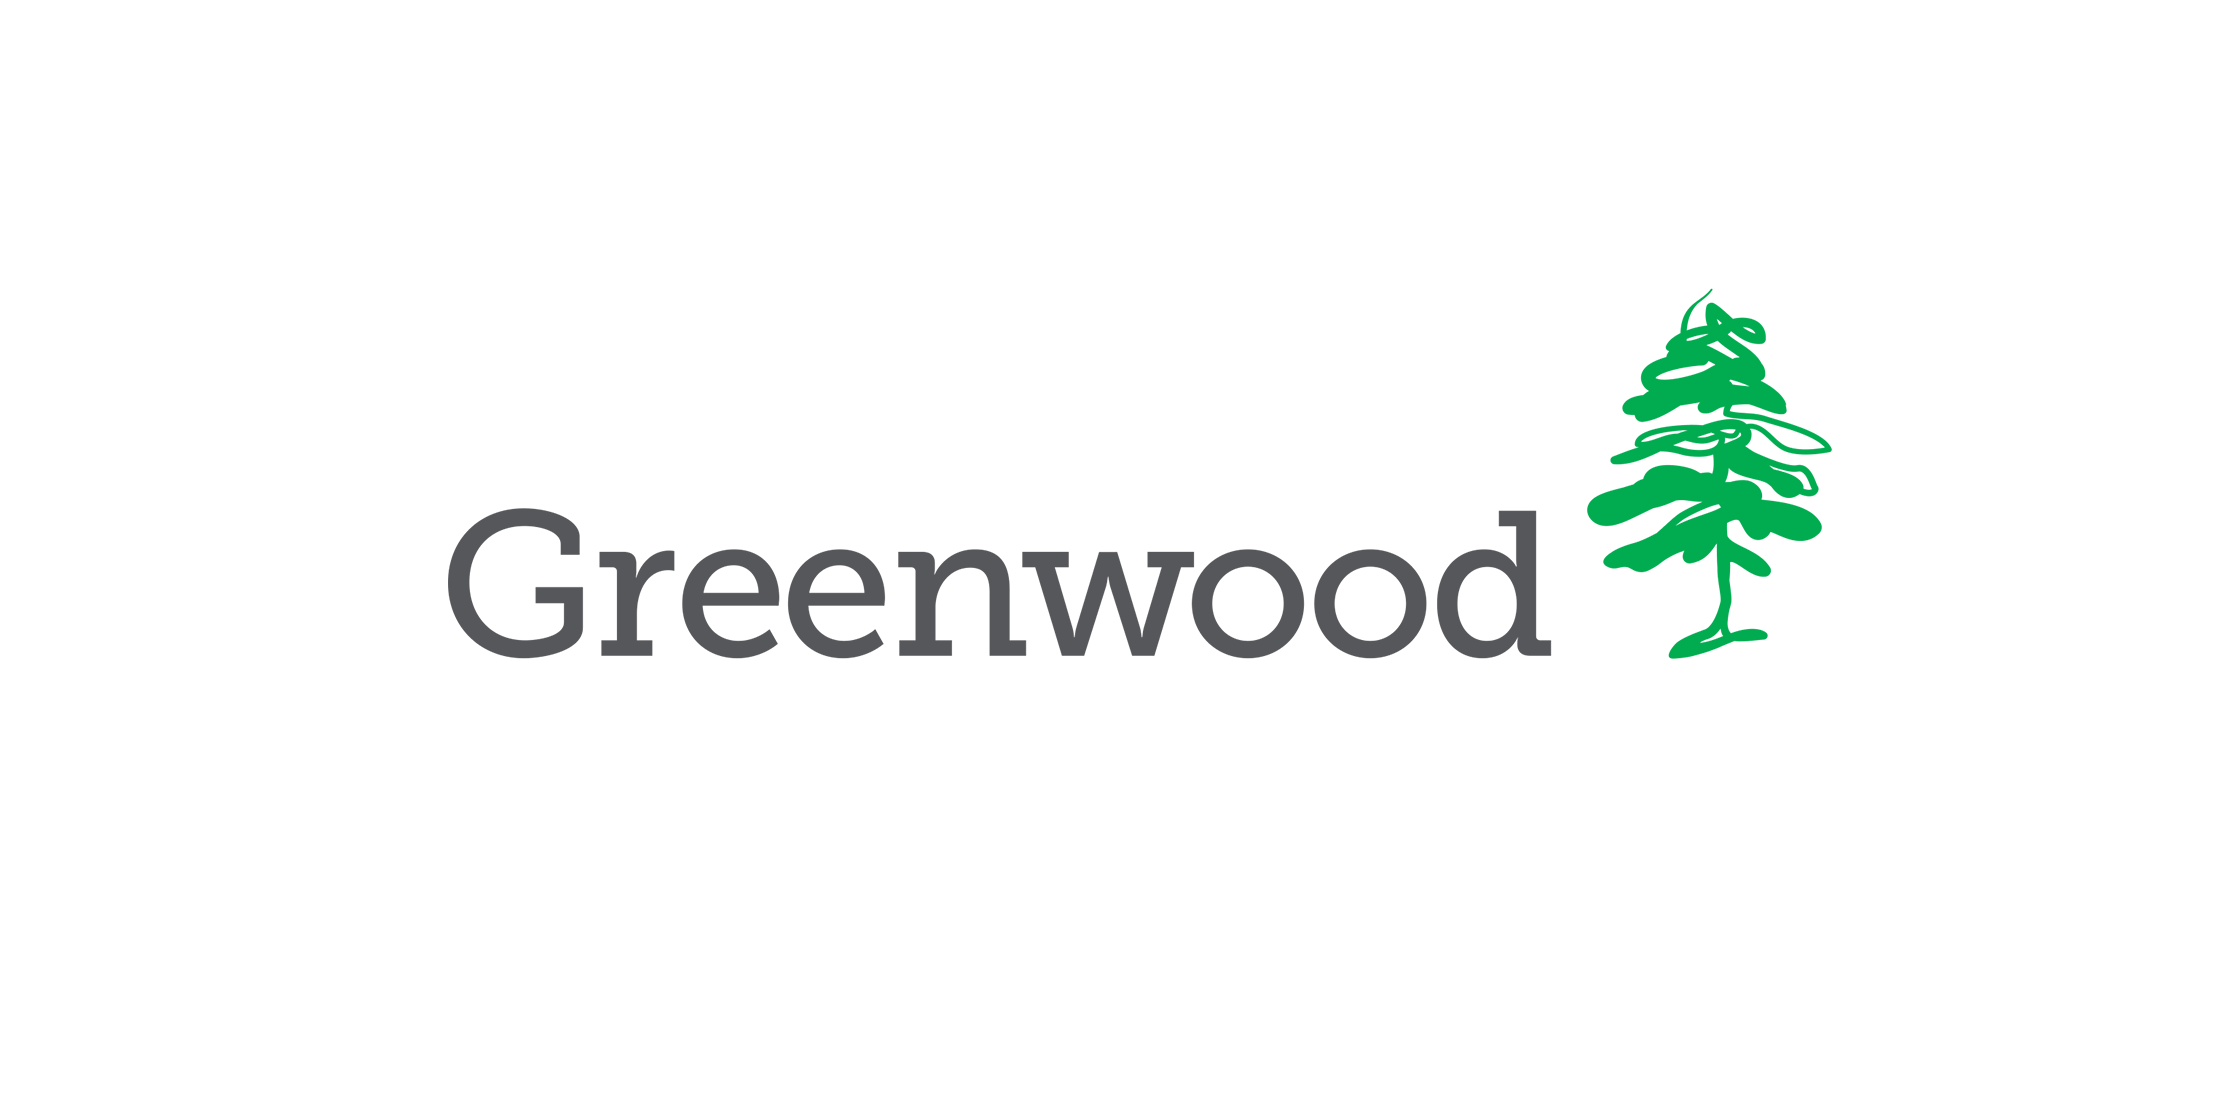 Brands_Greenwood_2016_01.png